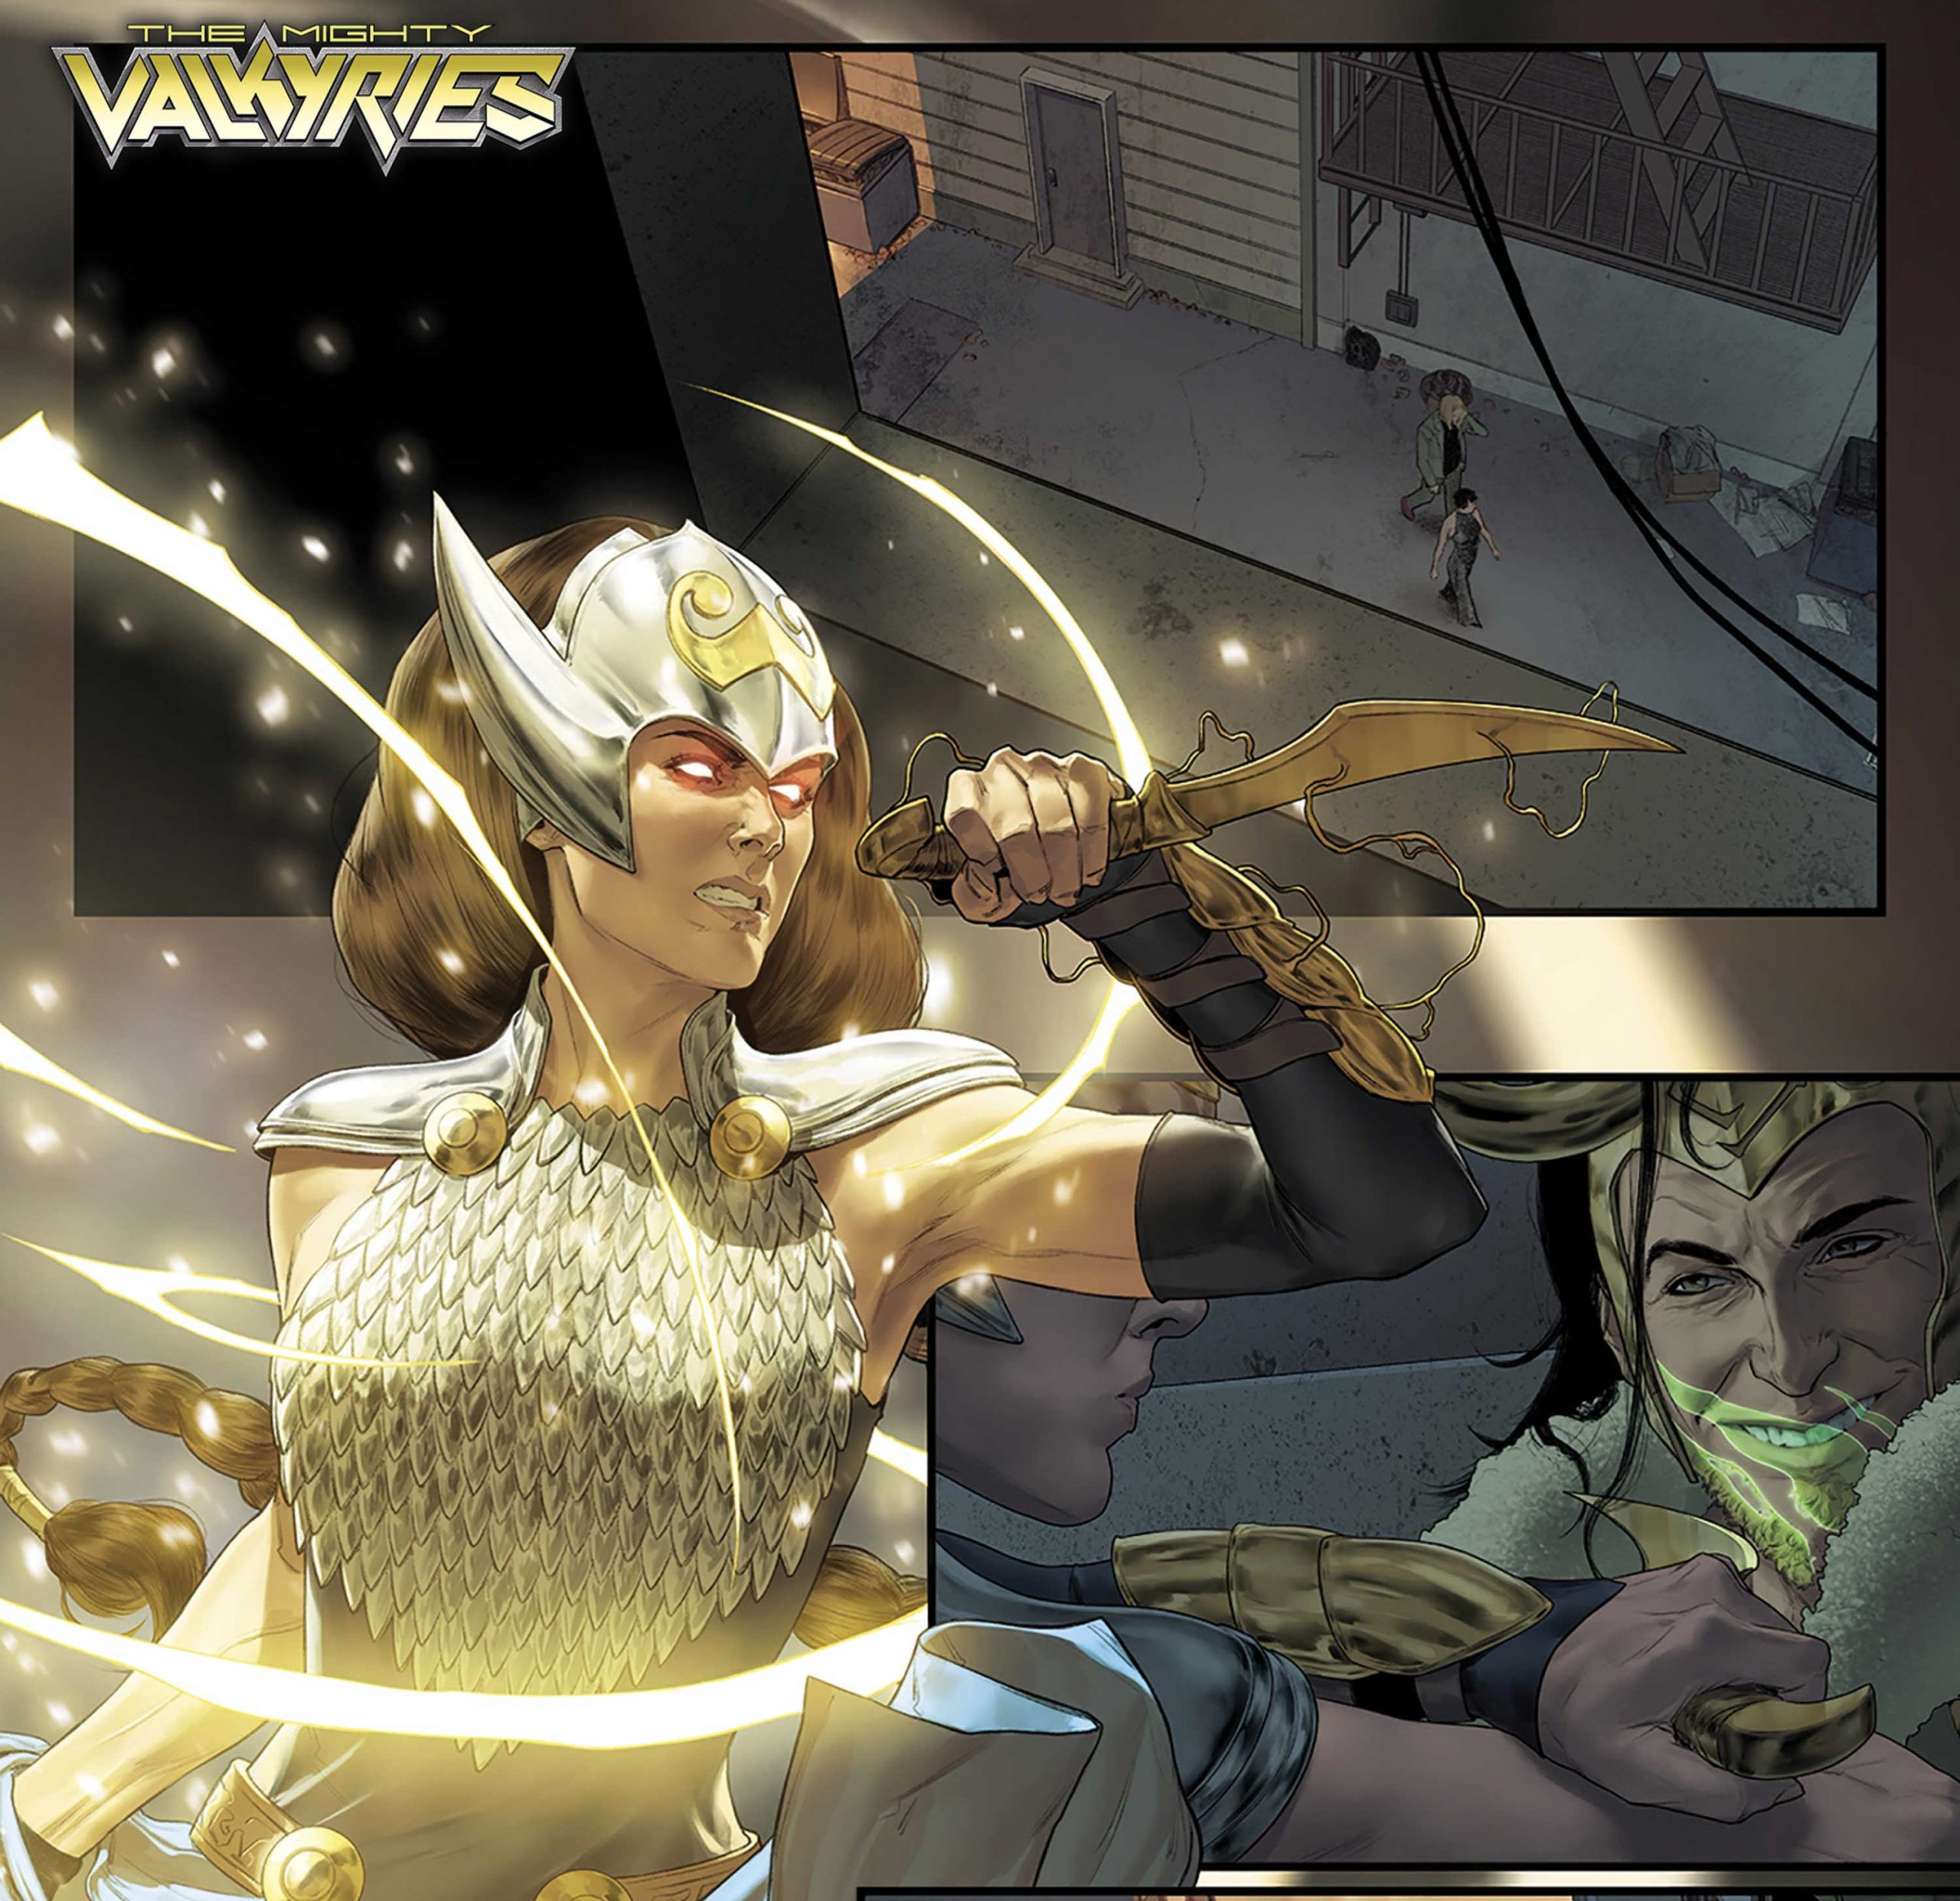 Marvel Comics launching 'The Mighty Valkyries' #1 April 2021